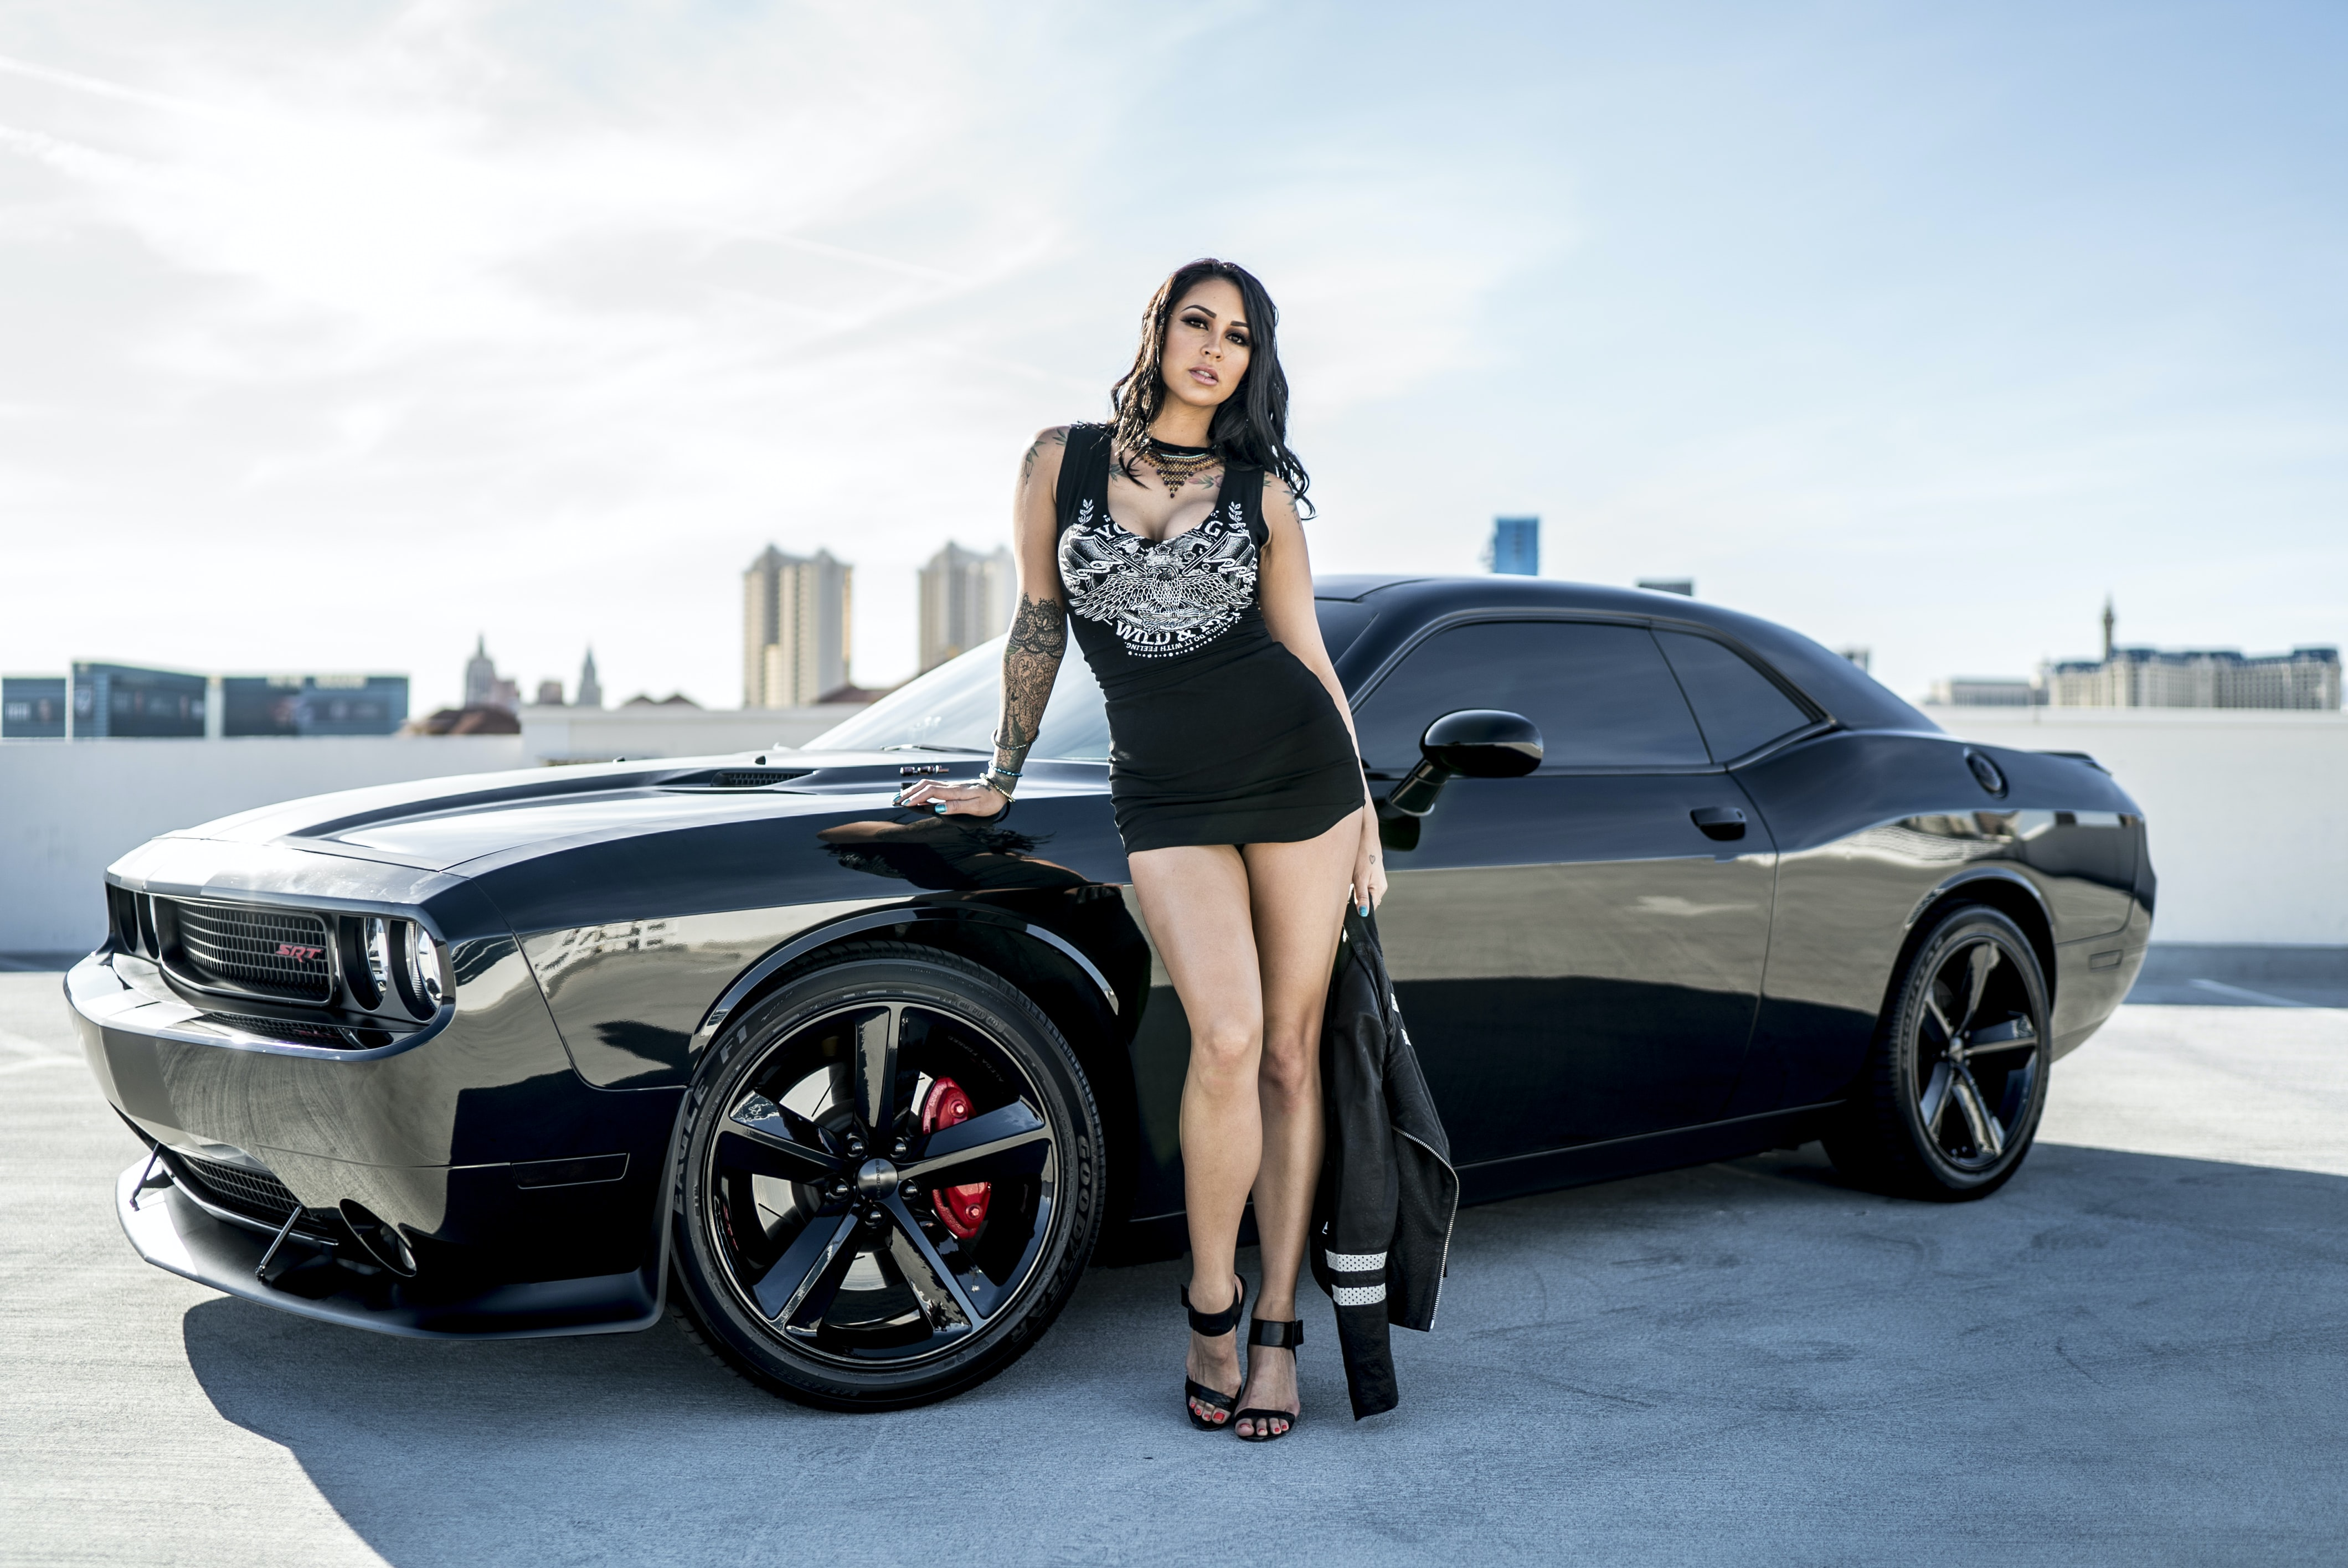 woman wearing black sleeveless dress standing in front of black Dodge Challenger